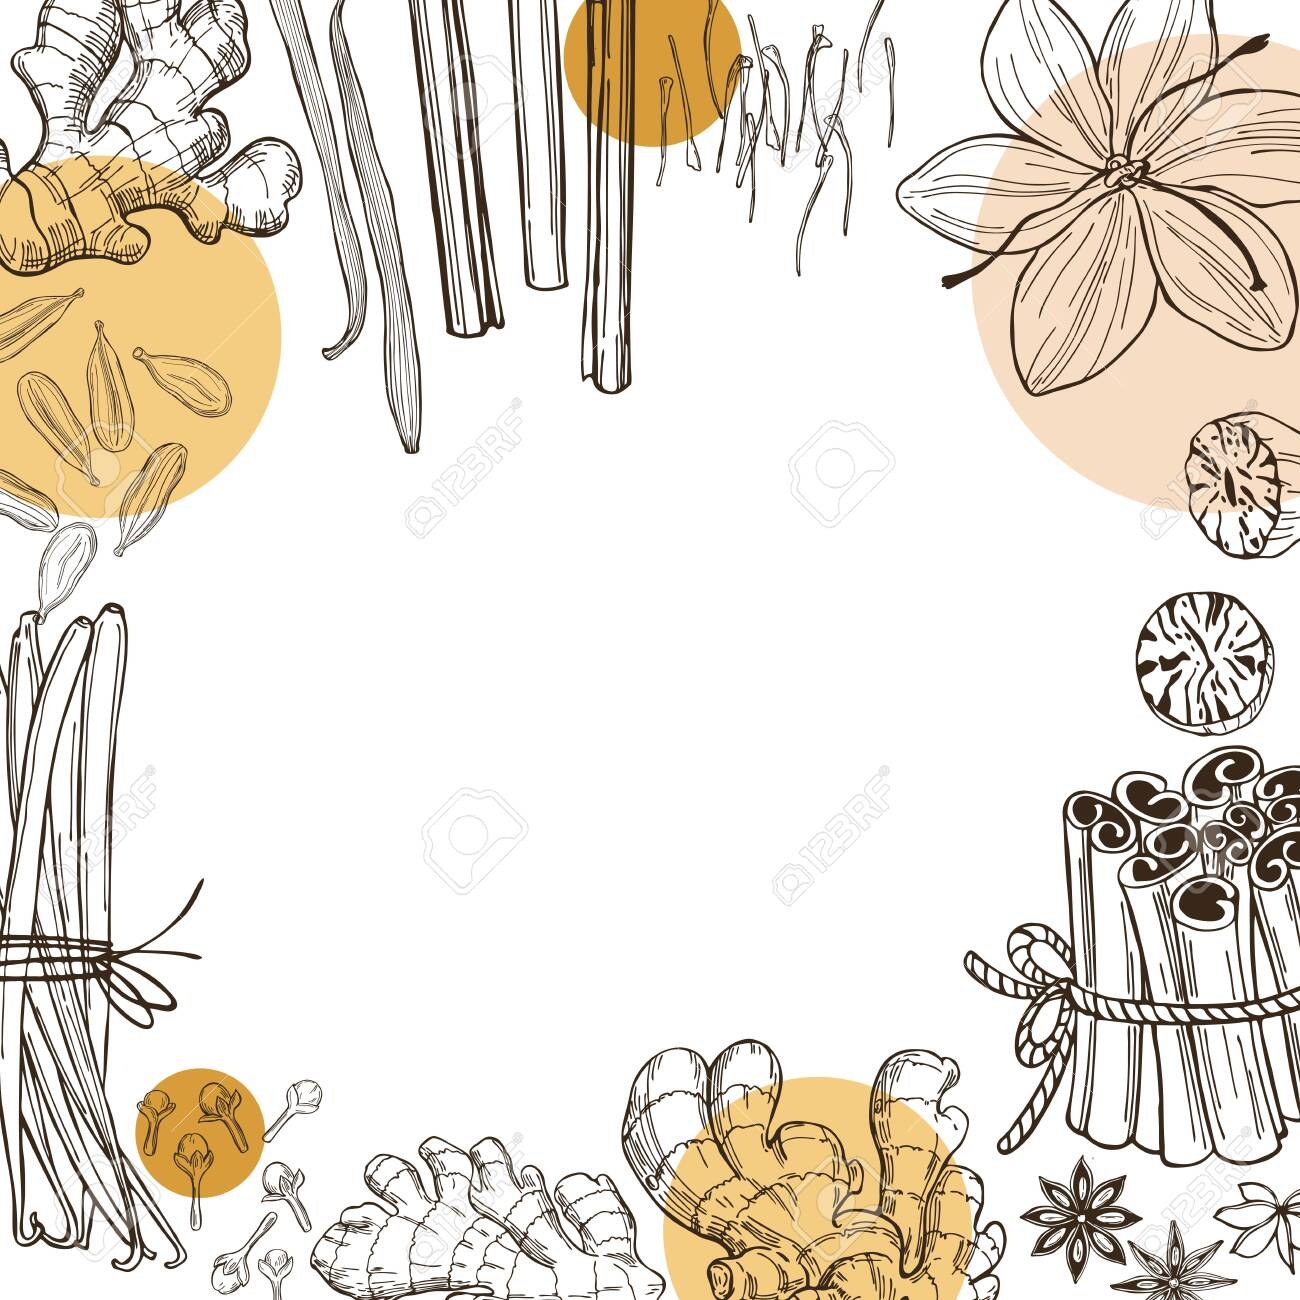 Spices for dessert, and baking.Vector background. Hand drawn sketch illustration - 149703411